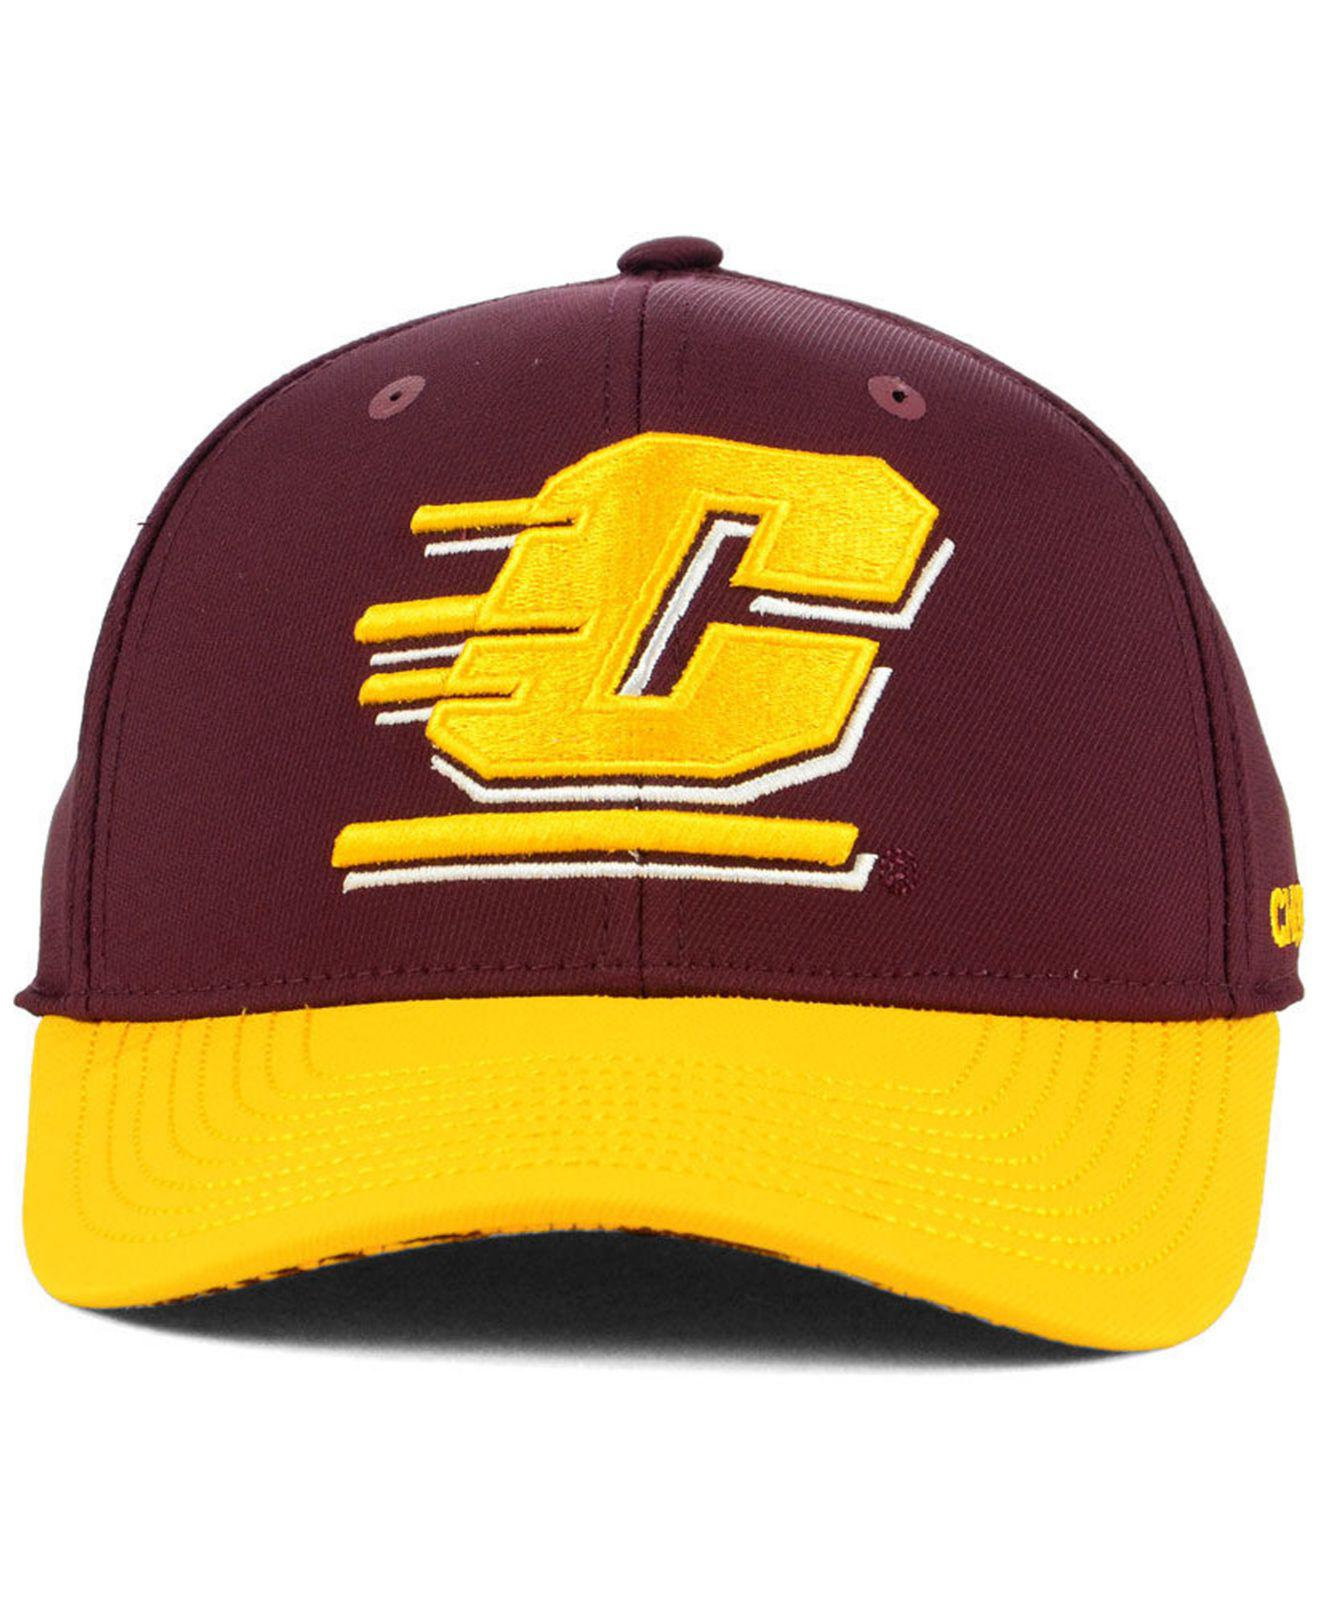 a2bc5dea ... italy lyst adidas central michigan chippewas coaches flex stretch  fitted cap 2018 for men 04546 15ec4